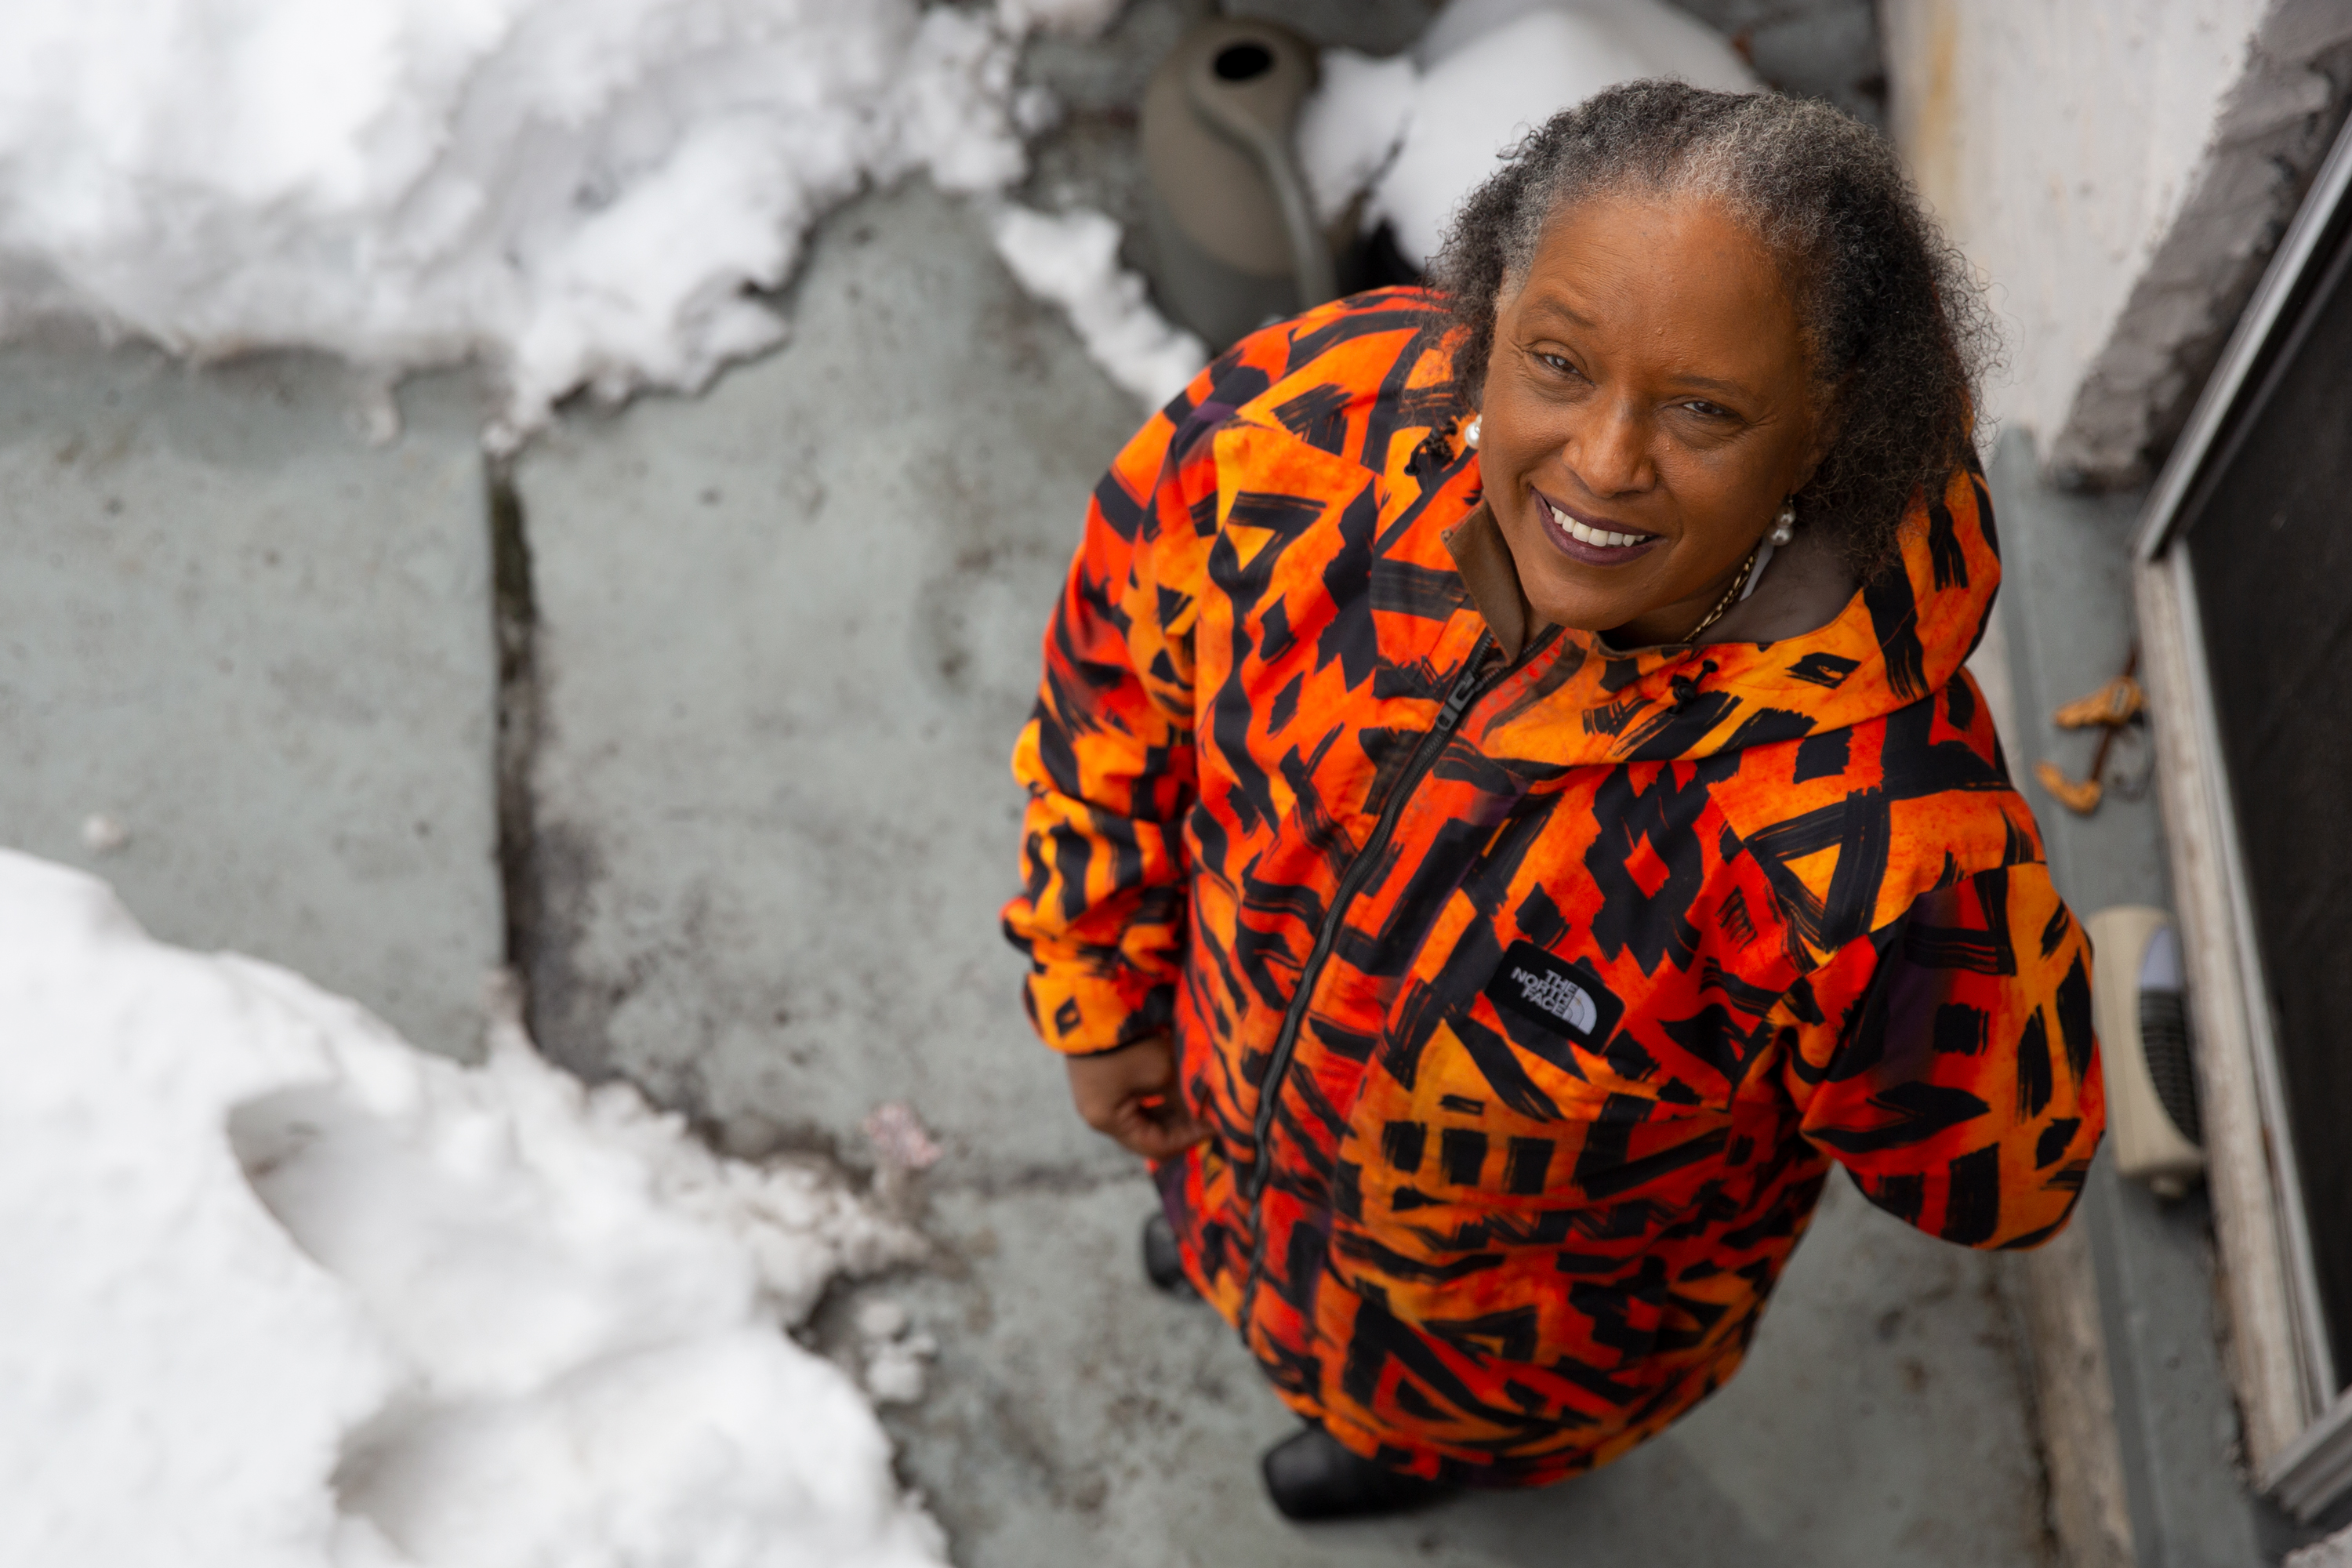 Carolyn Jones is calling on Governor Andrew Cuomo to grant clemency to the man convicted of shooting her in the head outside a Brooklyn church, Feb. 3, 2021.